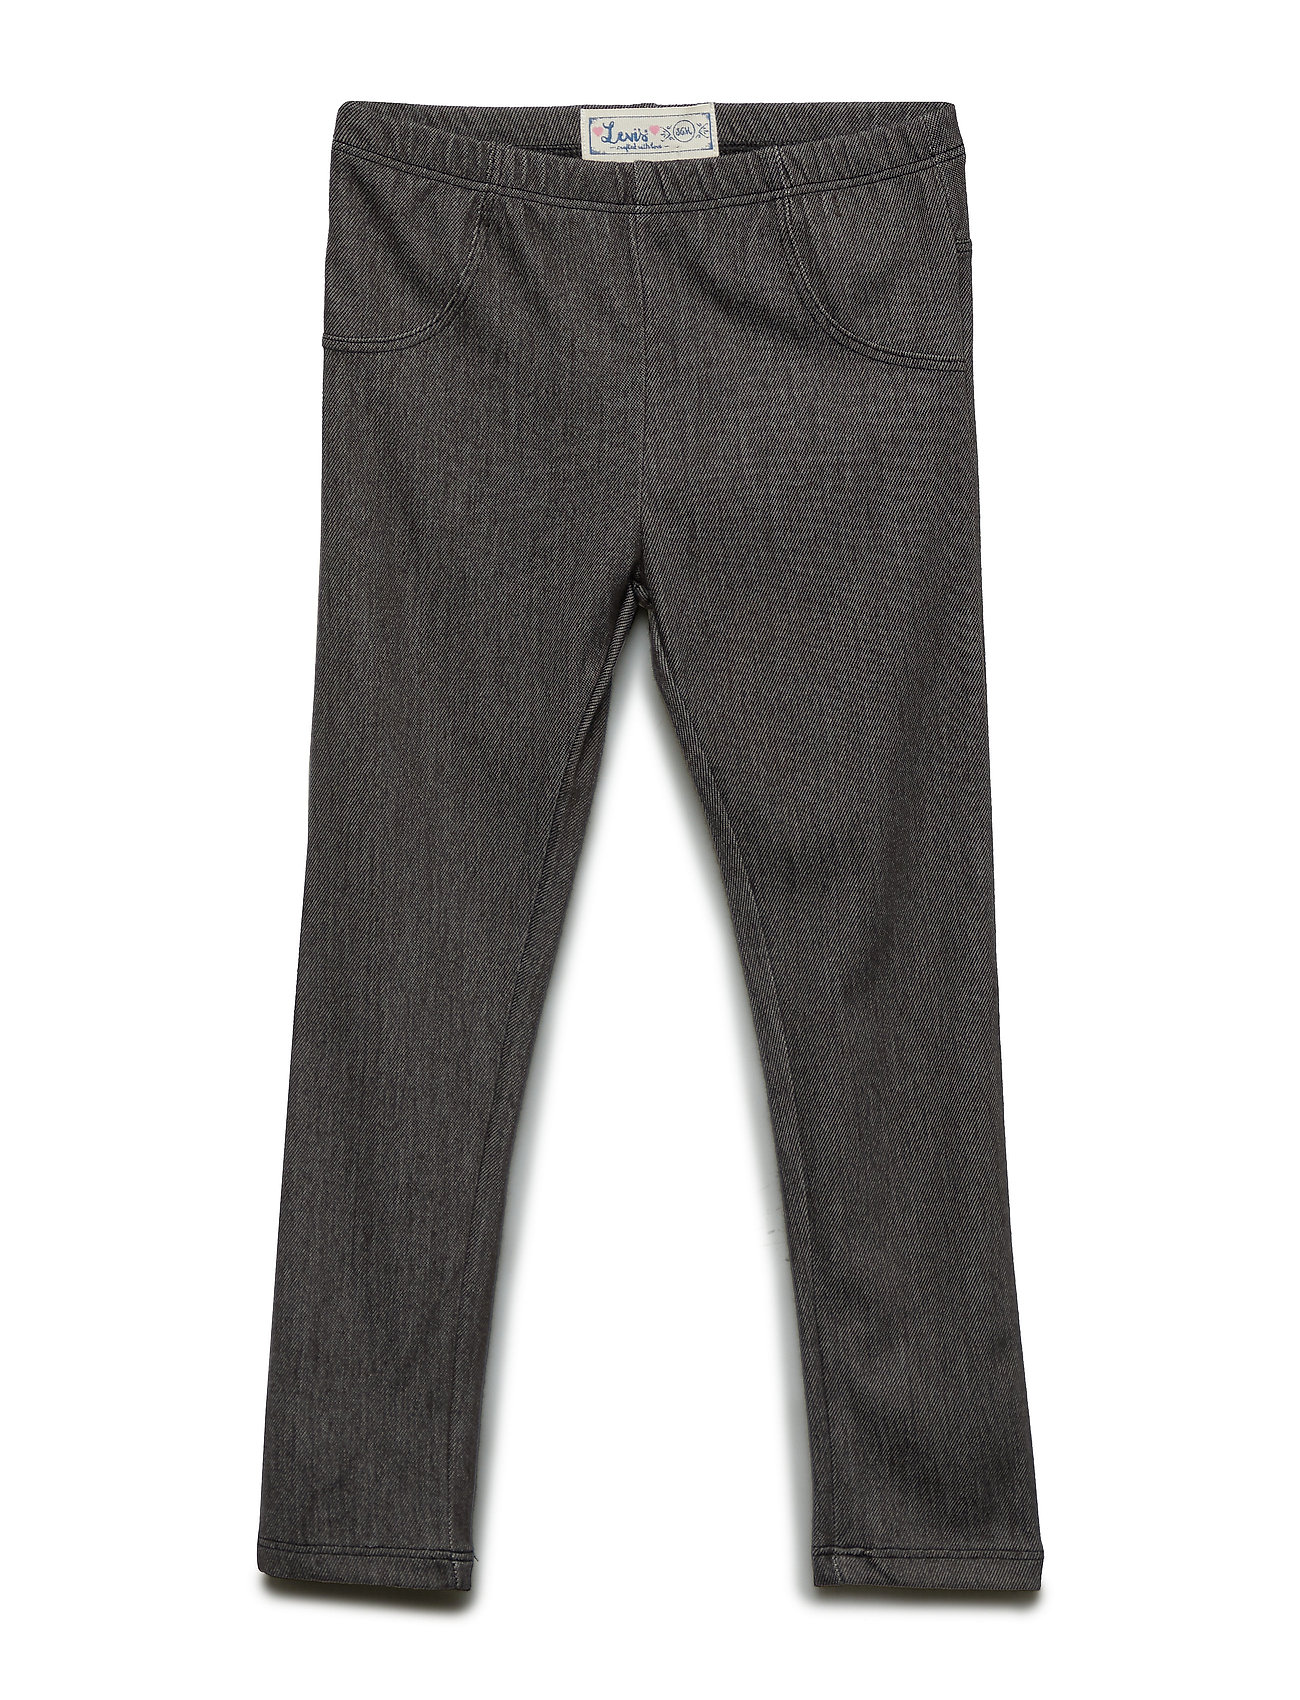 Levi's LEGGING - BLACK